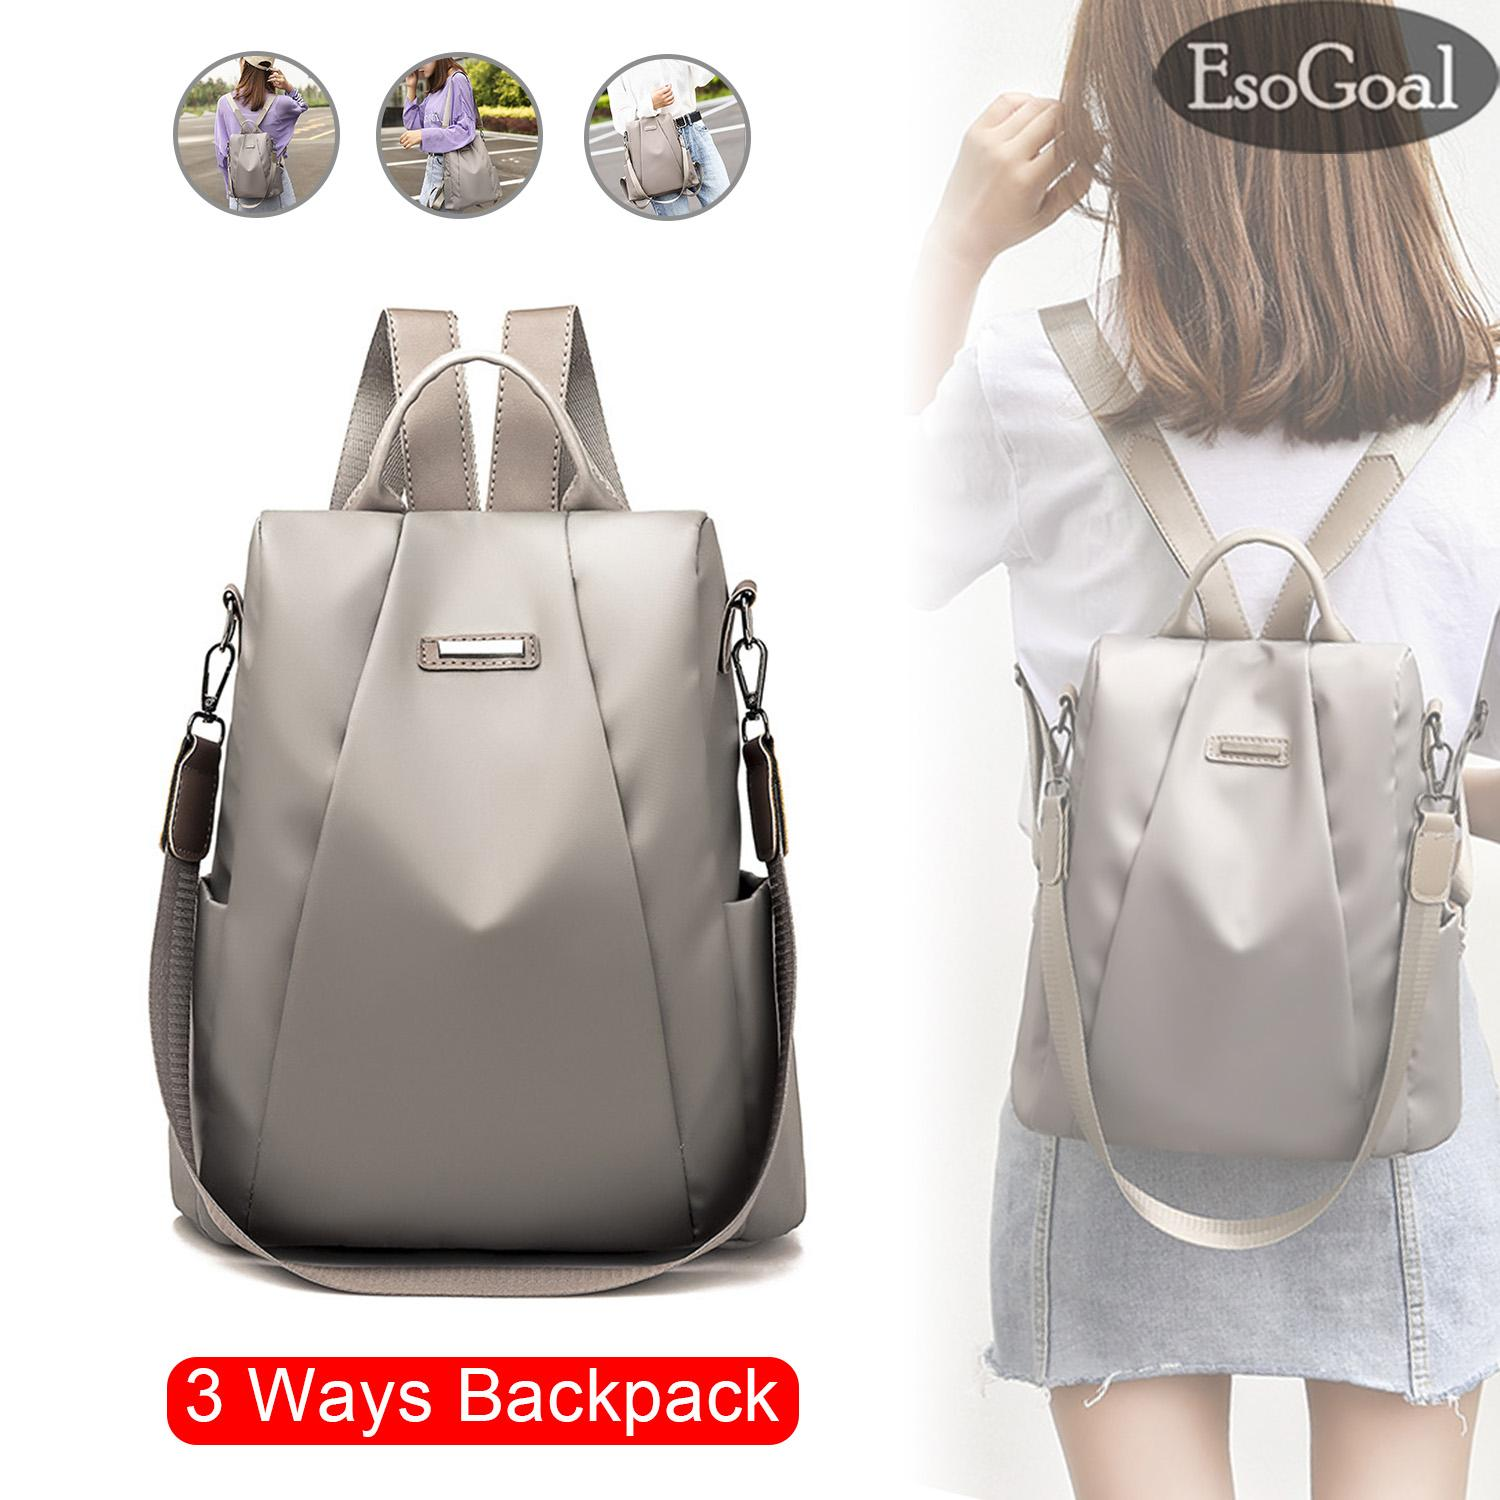 b994a1efe0cd EsoGoal Fashion Women Backpack Shoulder Bag Korea Style Anti-theft Backpack  College School Bag For